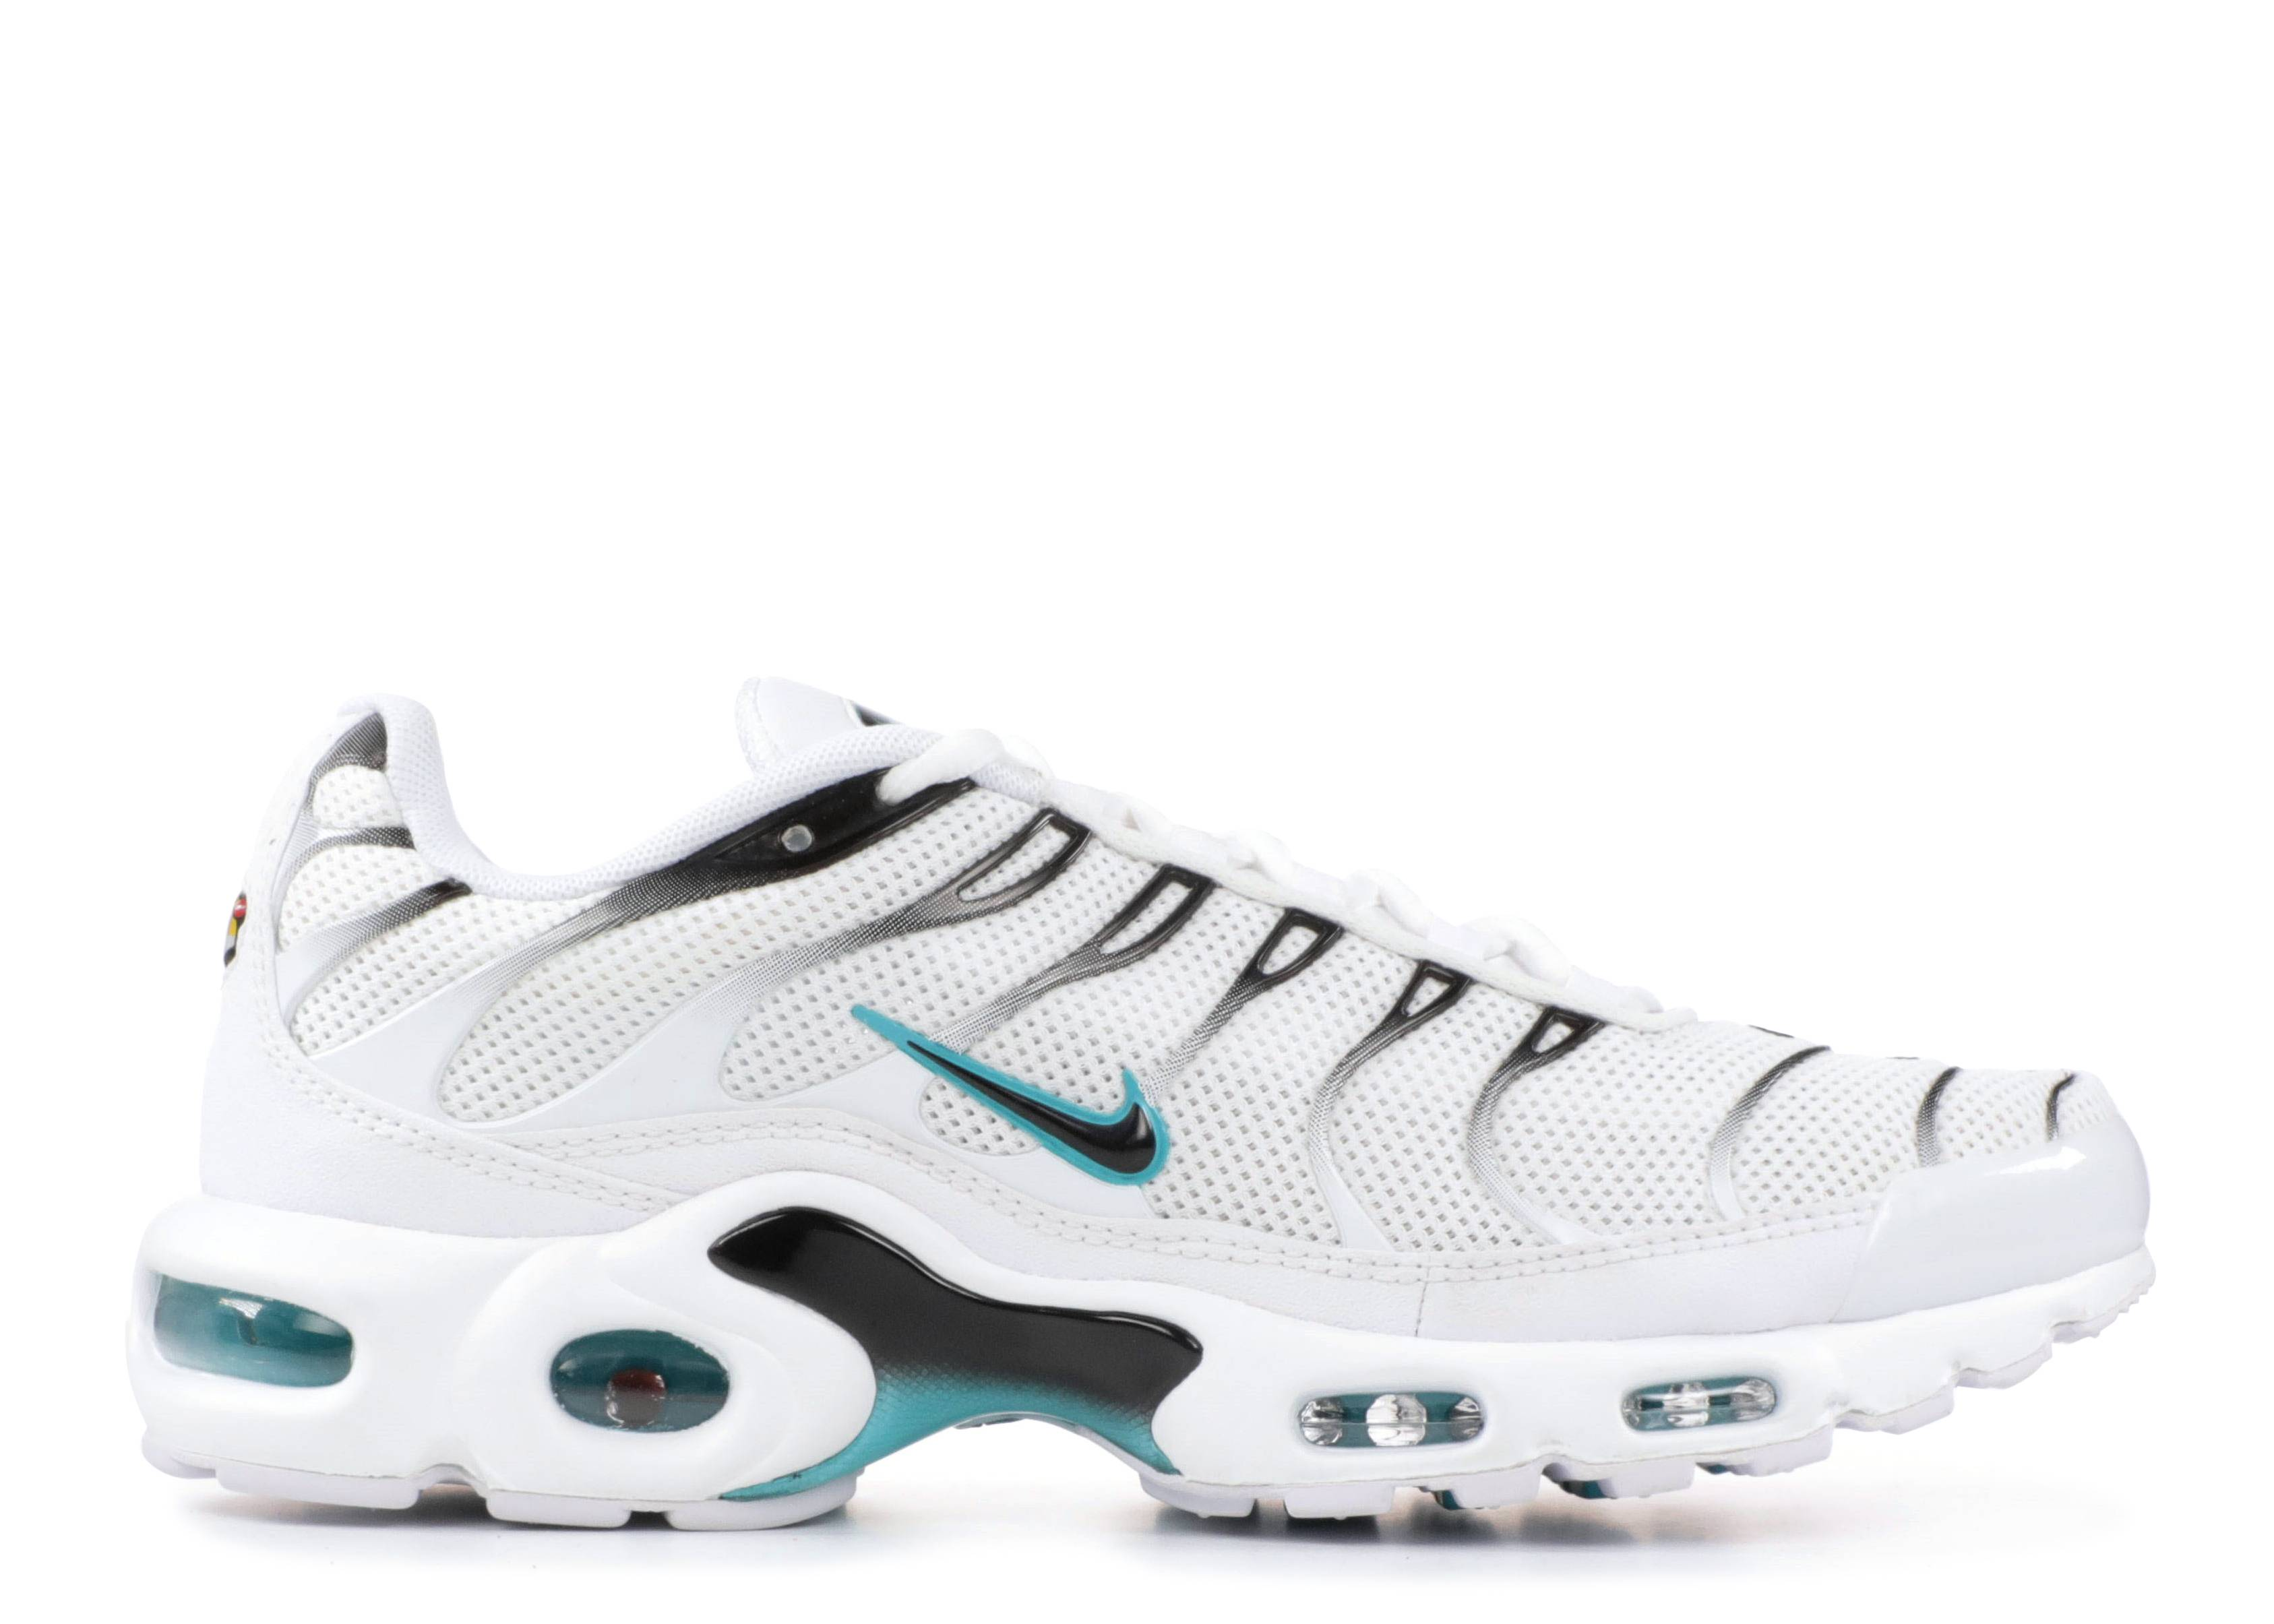 Nike Air Max Plus TN Tuned Running Shoes Black Gym Red White